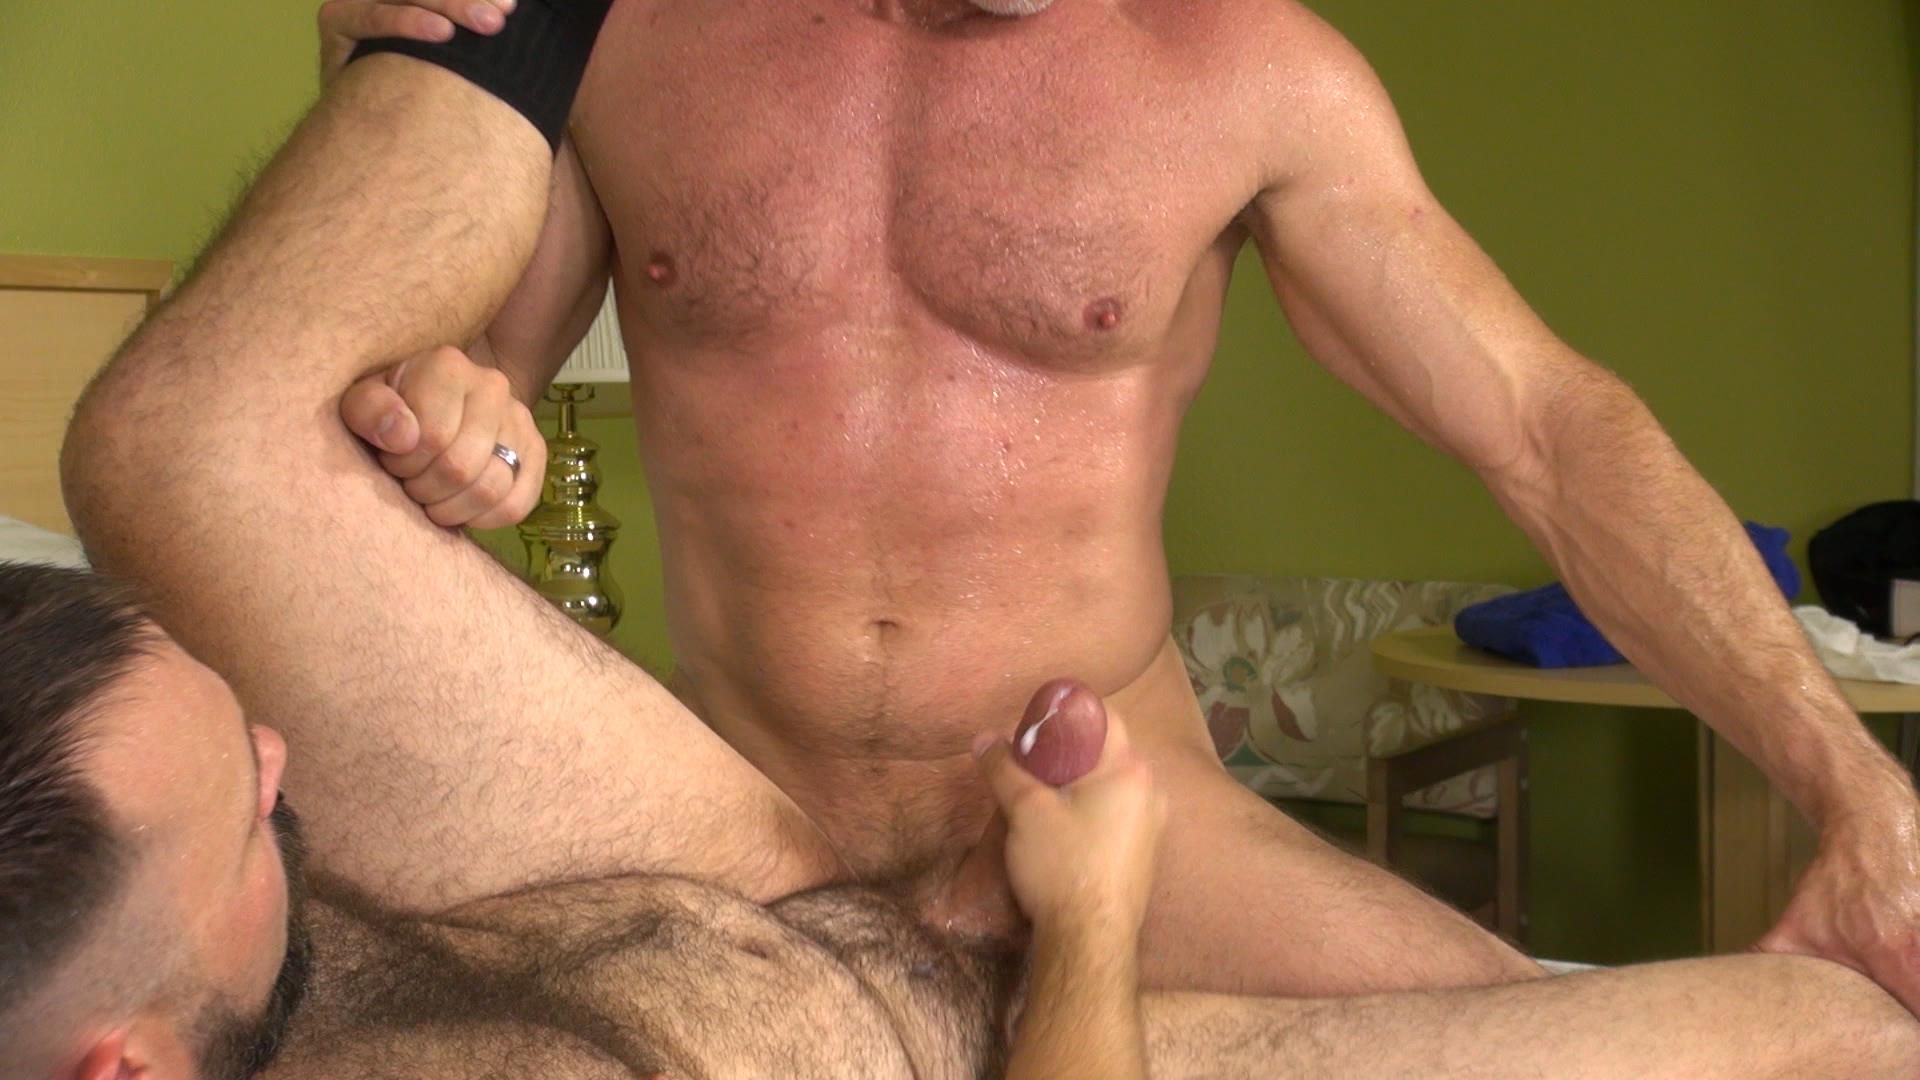 Raw and Rough Boy Fillmore and Sam Dixon Hairy Muscle Bears Fucking Bareback Amateur Gay Porn 08 Hairy Muscle Bears Barebacking At A Cheap Motel